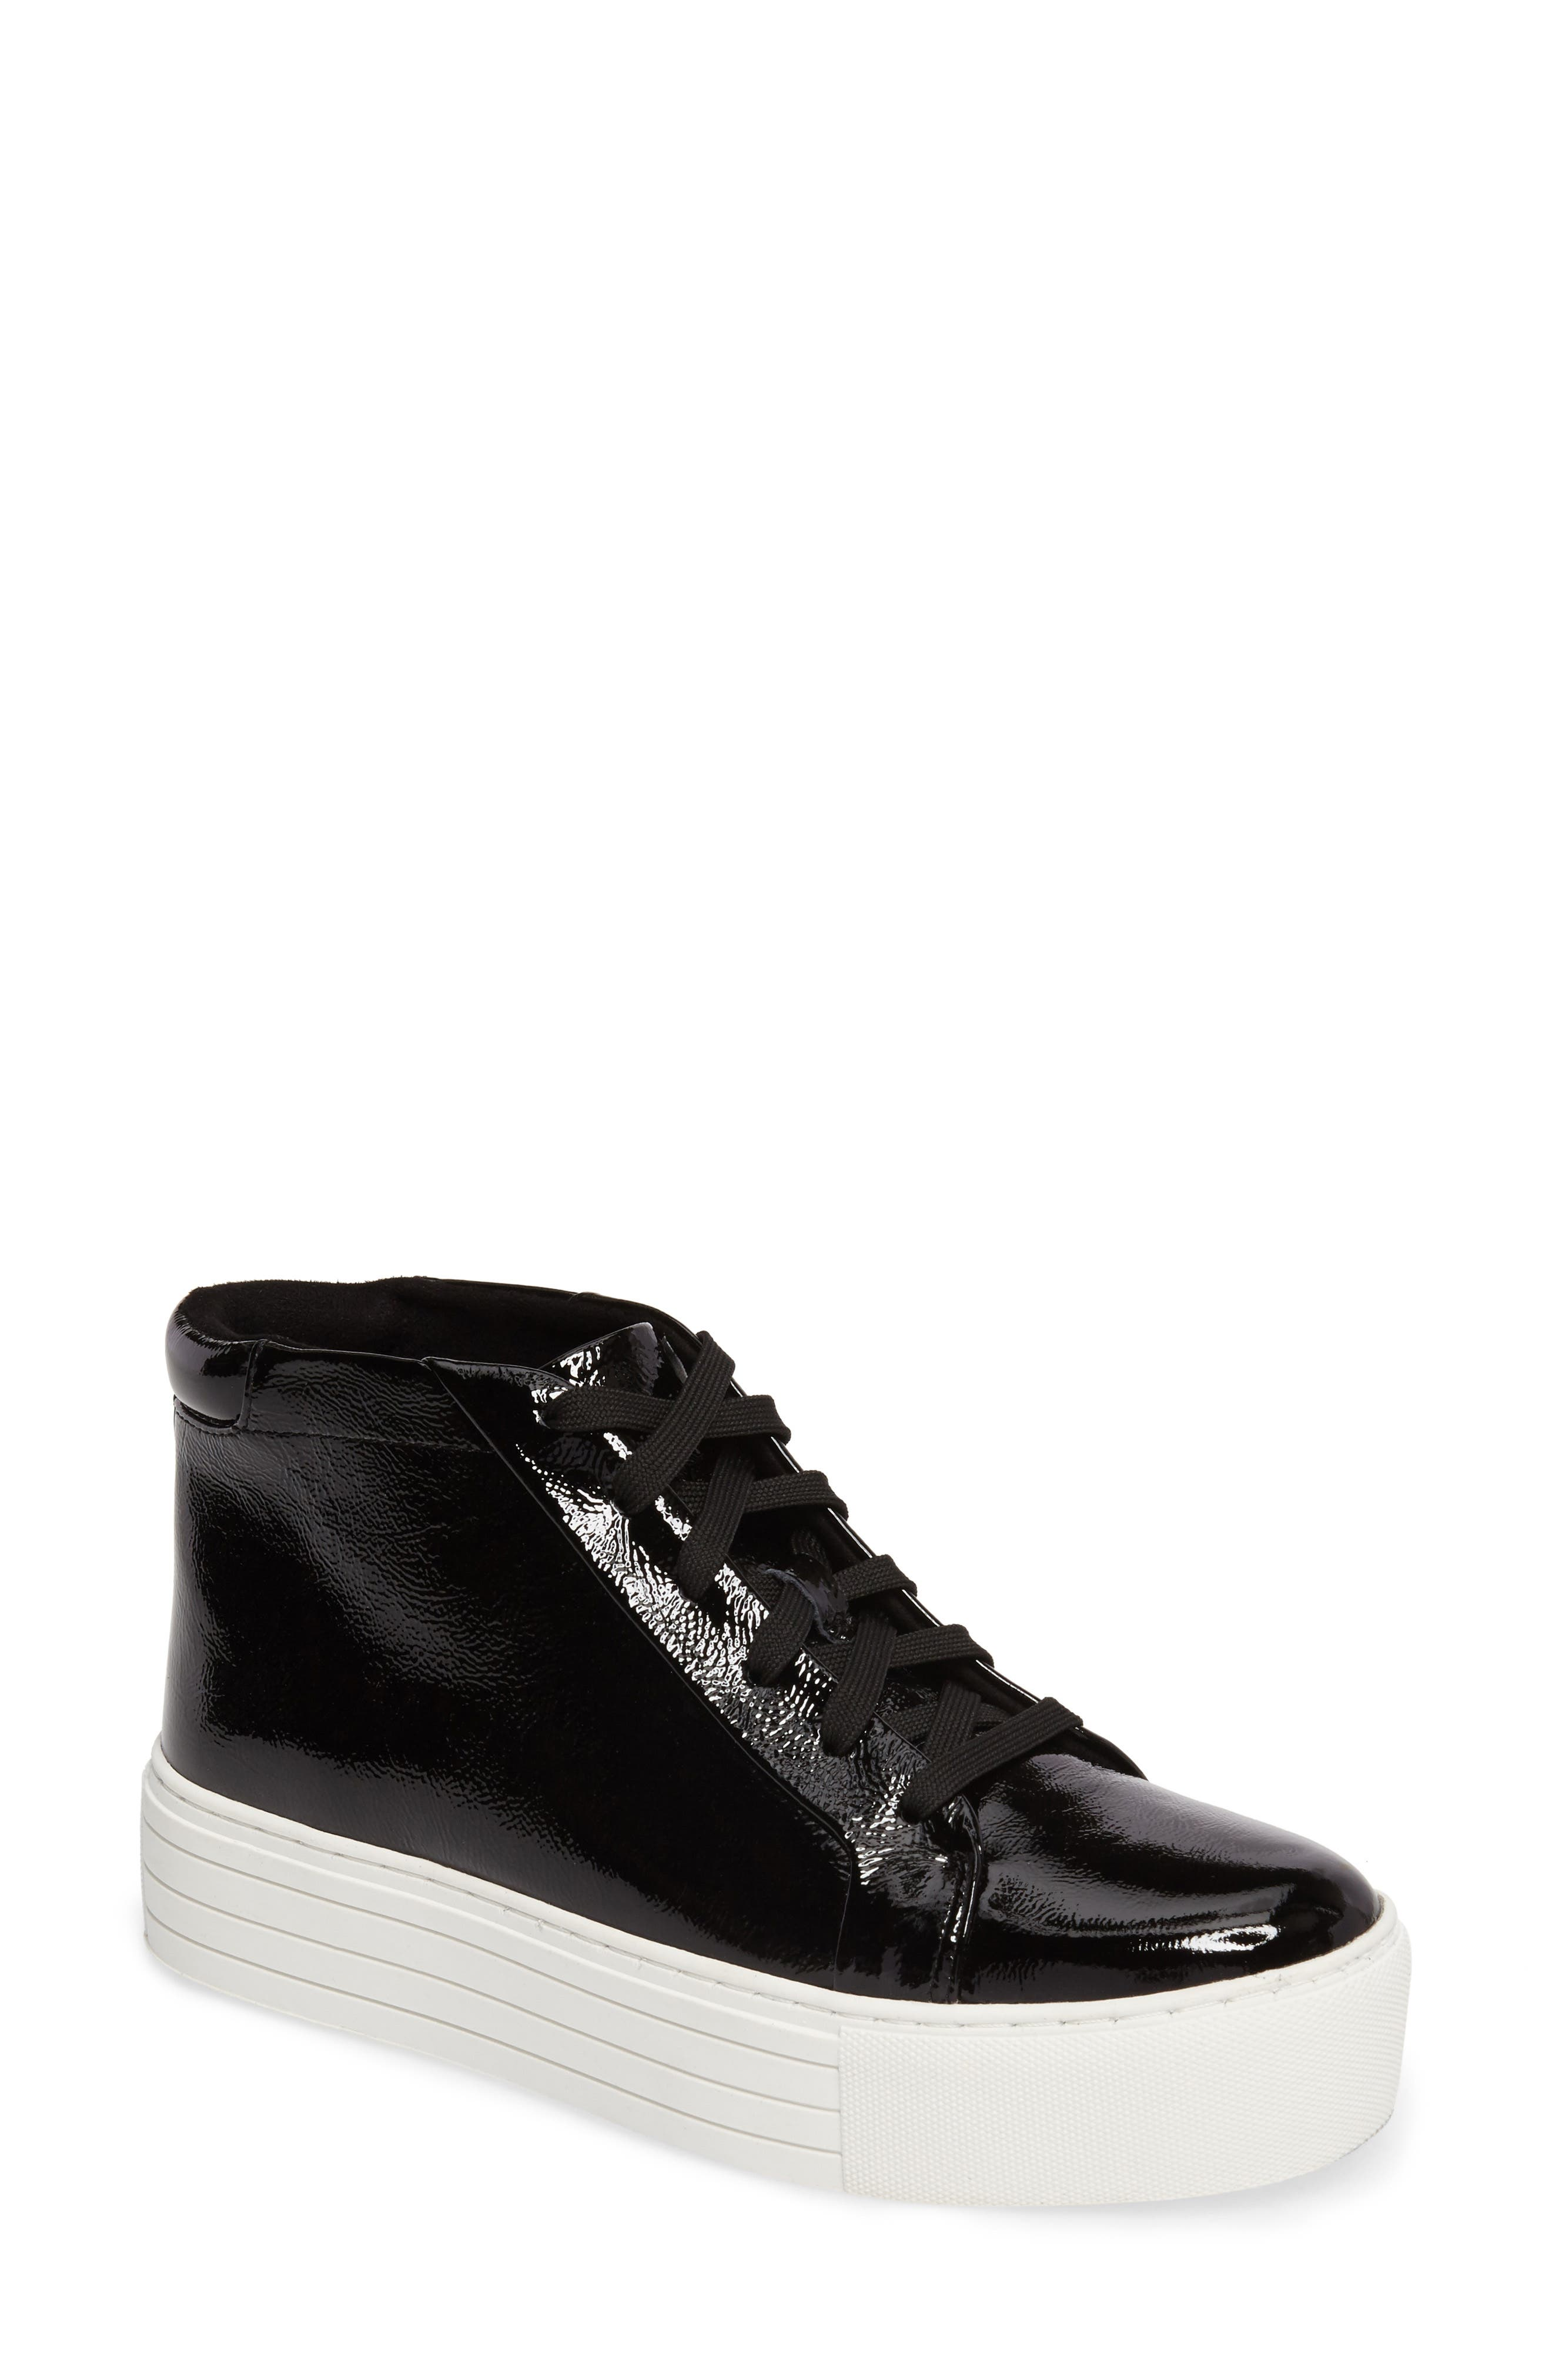 Janette High Top Platform Sneaker,                         Main,                         color, Black Patent Leather